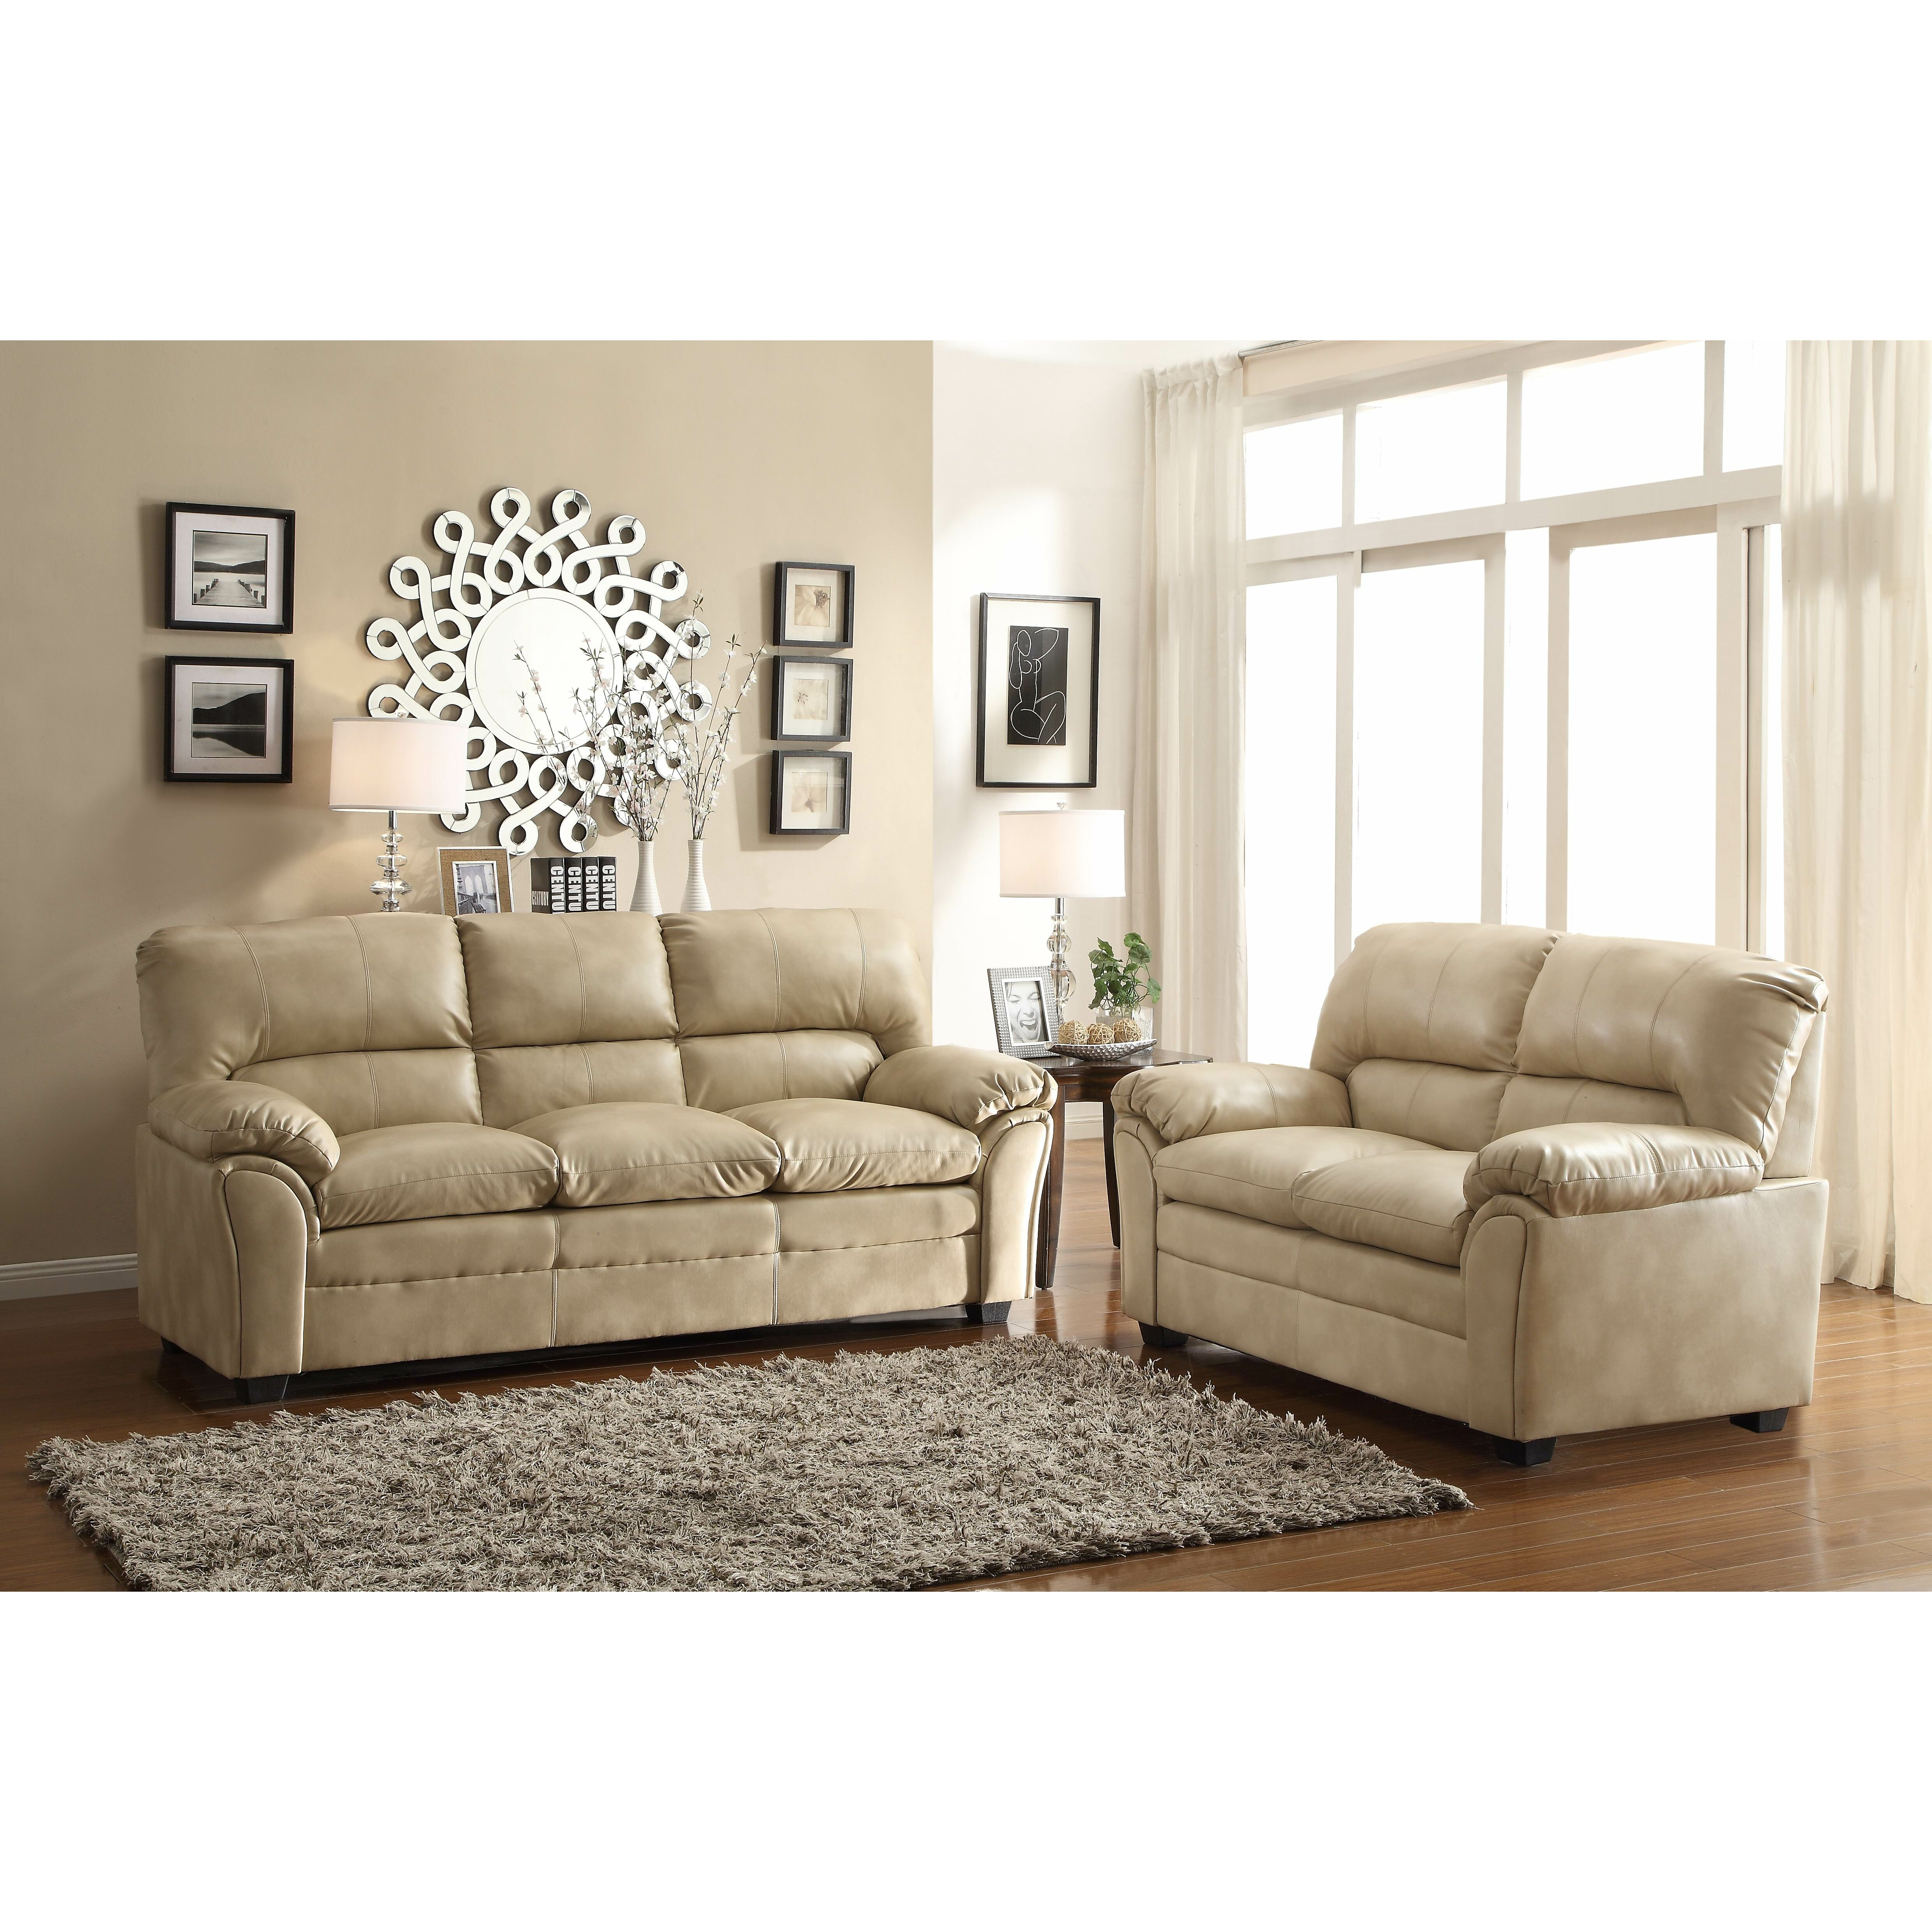 woodhaven living room furniture. Woodhaven Living Room Furniture The Best Ideas 2017  safemarket us